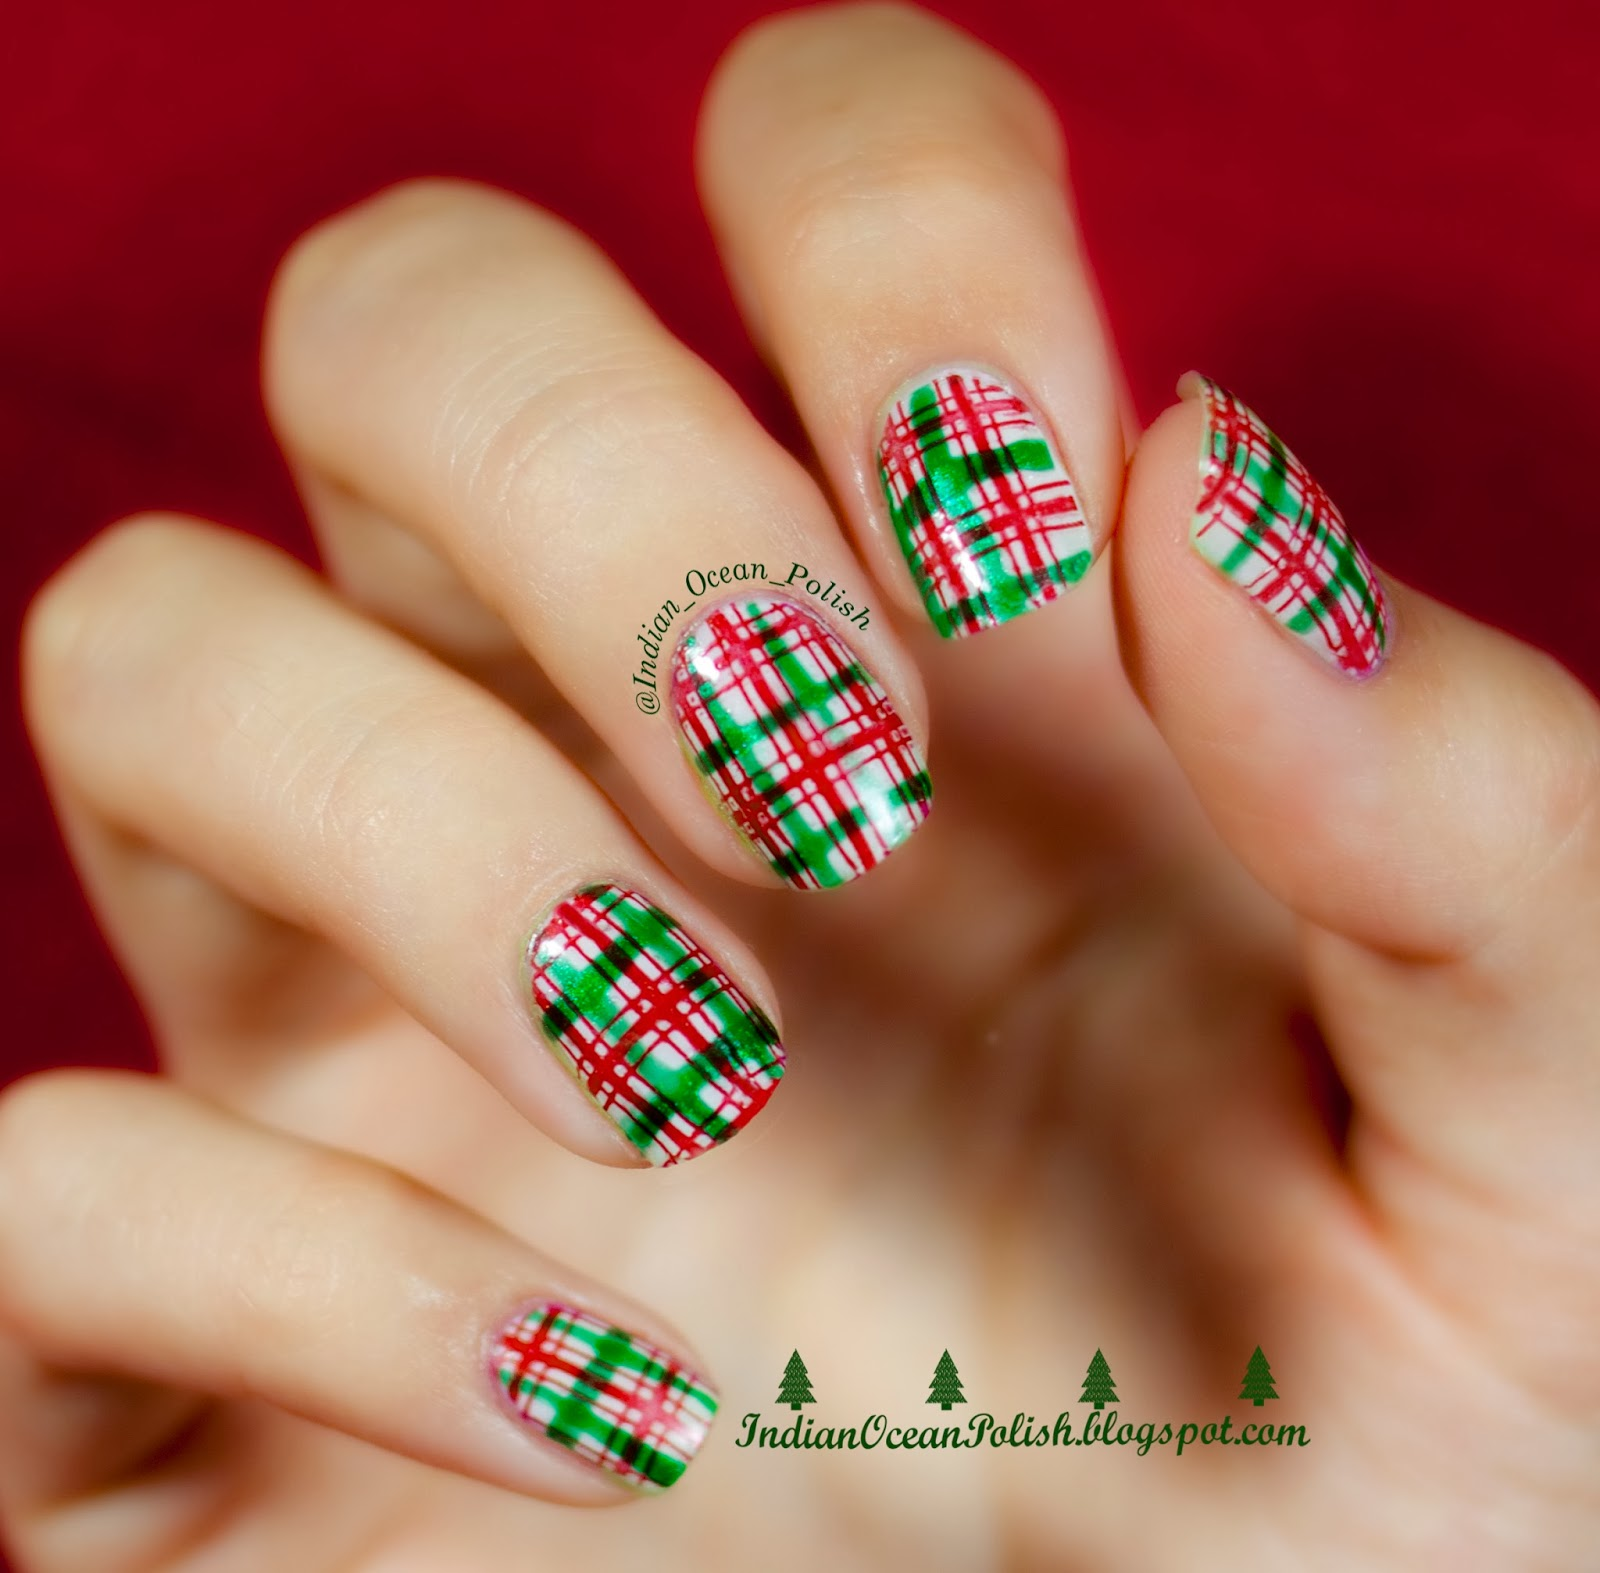 Christmas 2013 Nail Art: Indian Ocean Polish: Christmas 2013 Nail Art Ideas: Simple